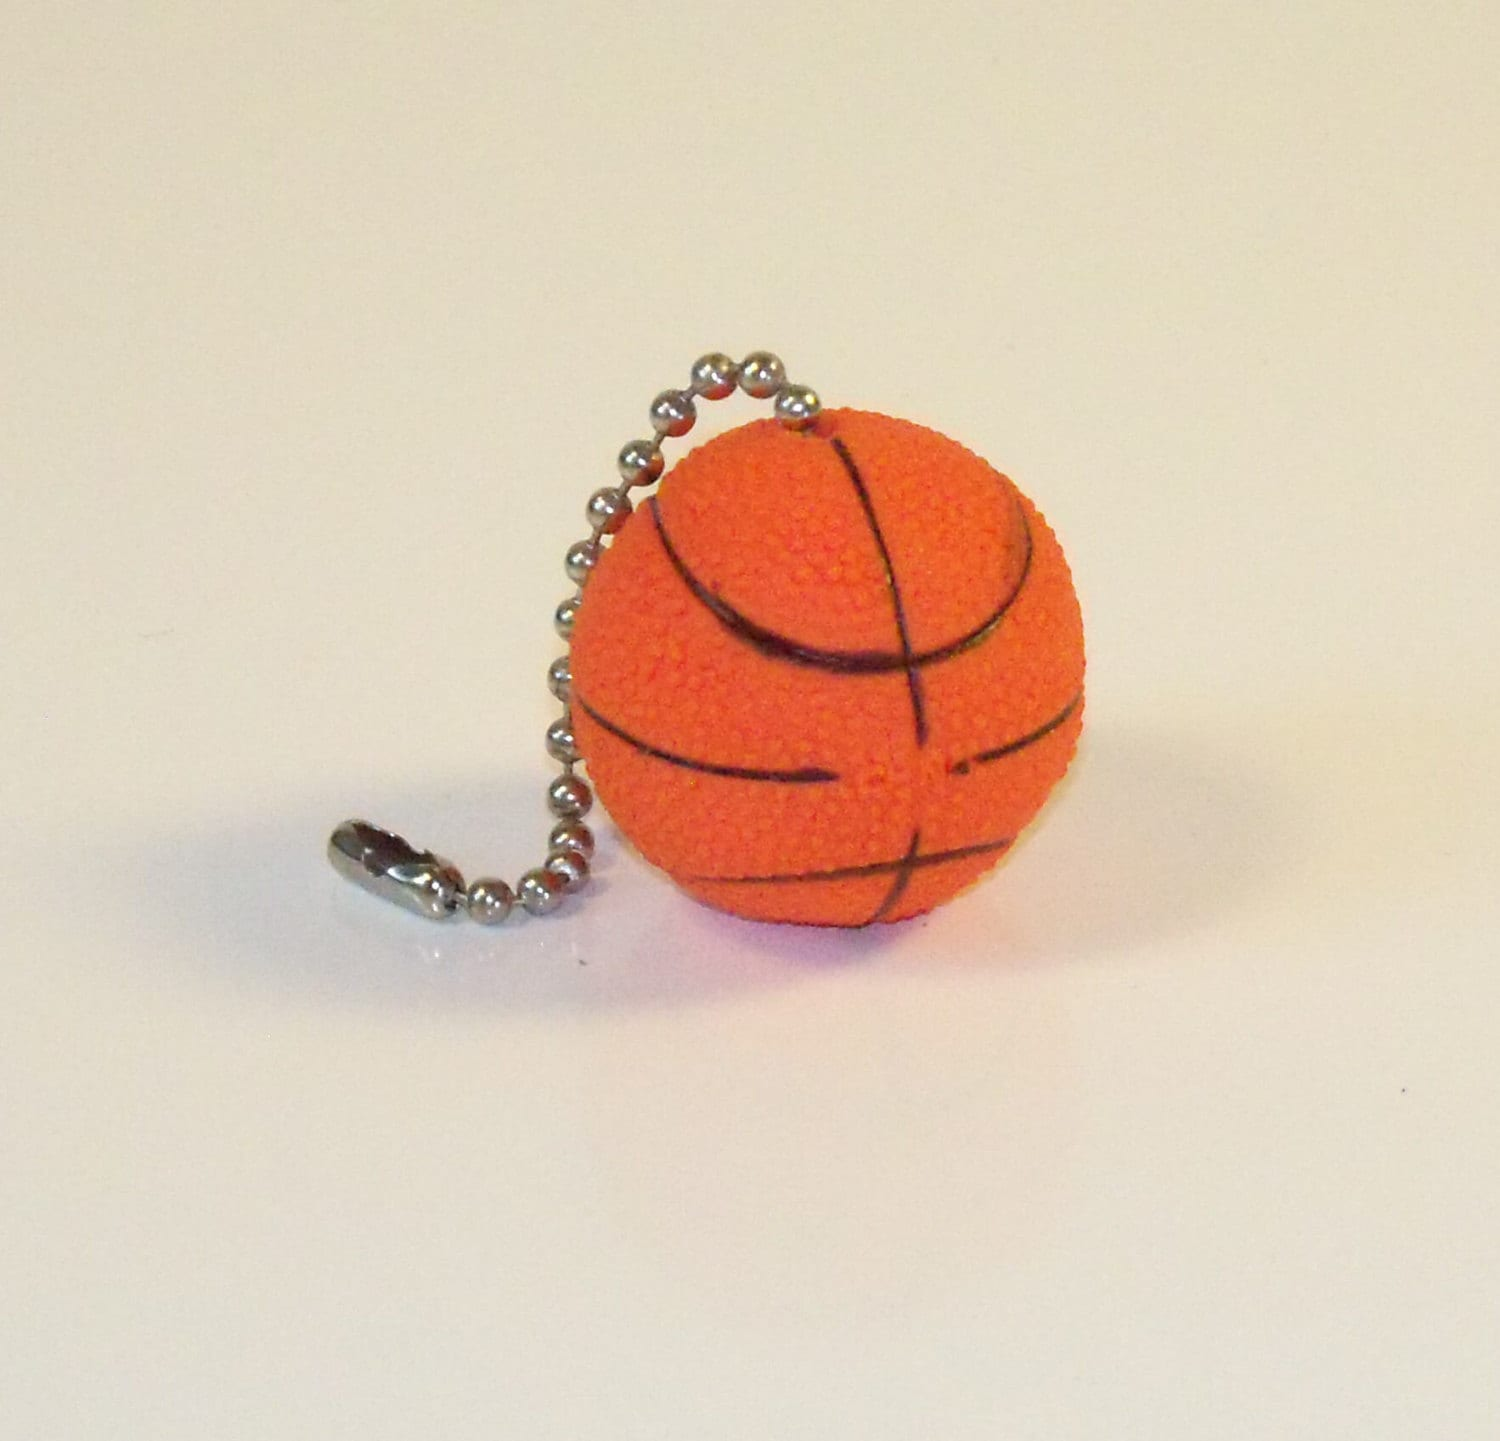 Basketball ceiling fan lamp pull chain coaches gift man cave basketball ceiling fan lamp pull chain coaches gift man cave decor sports decor coaches gift kids room decor gift for him mozeypictures Choice Image